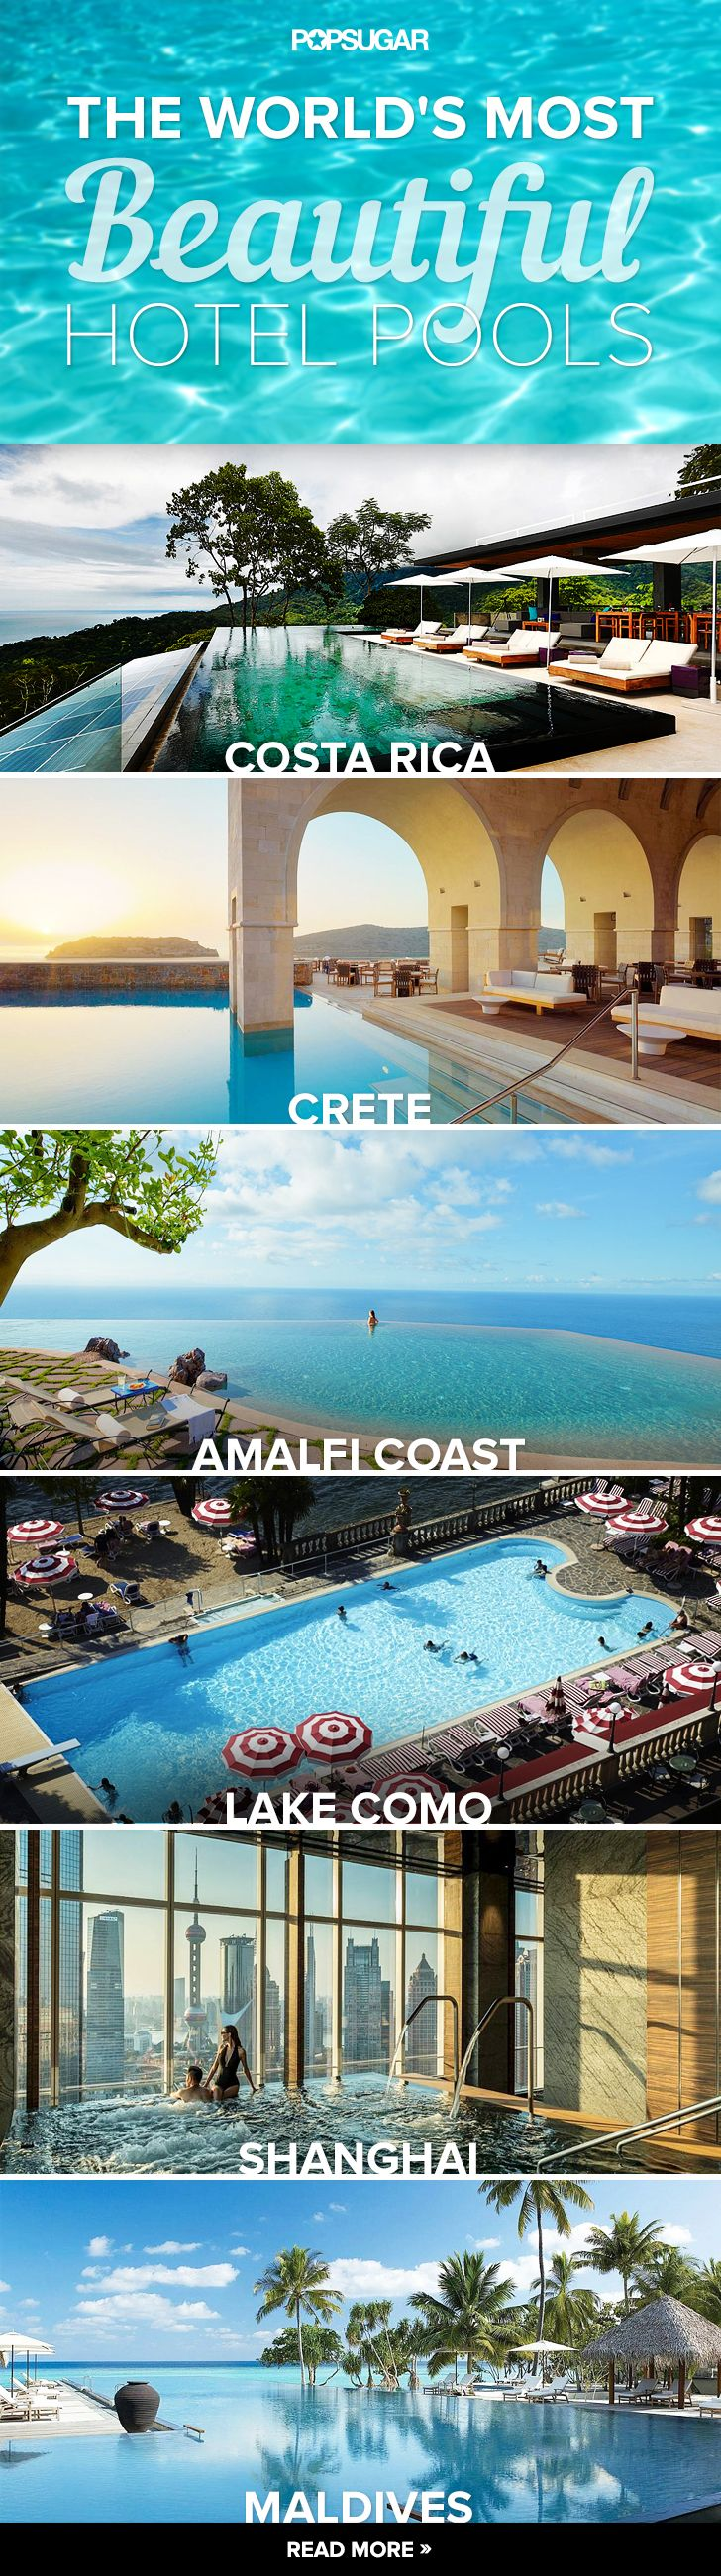 The most beautiful hotel pools | bucket list